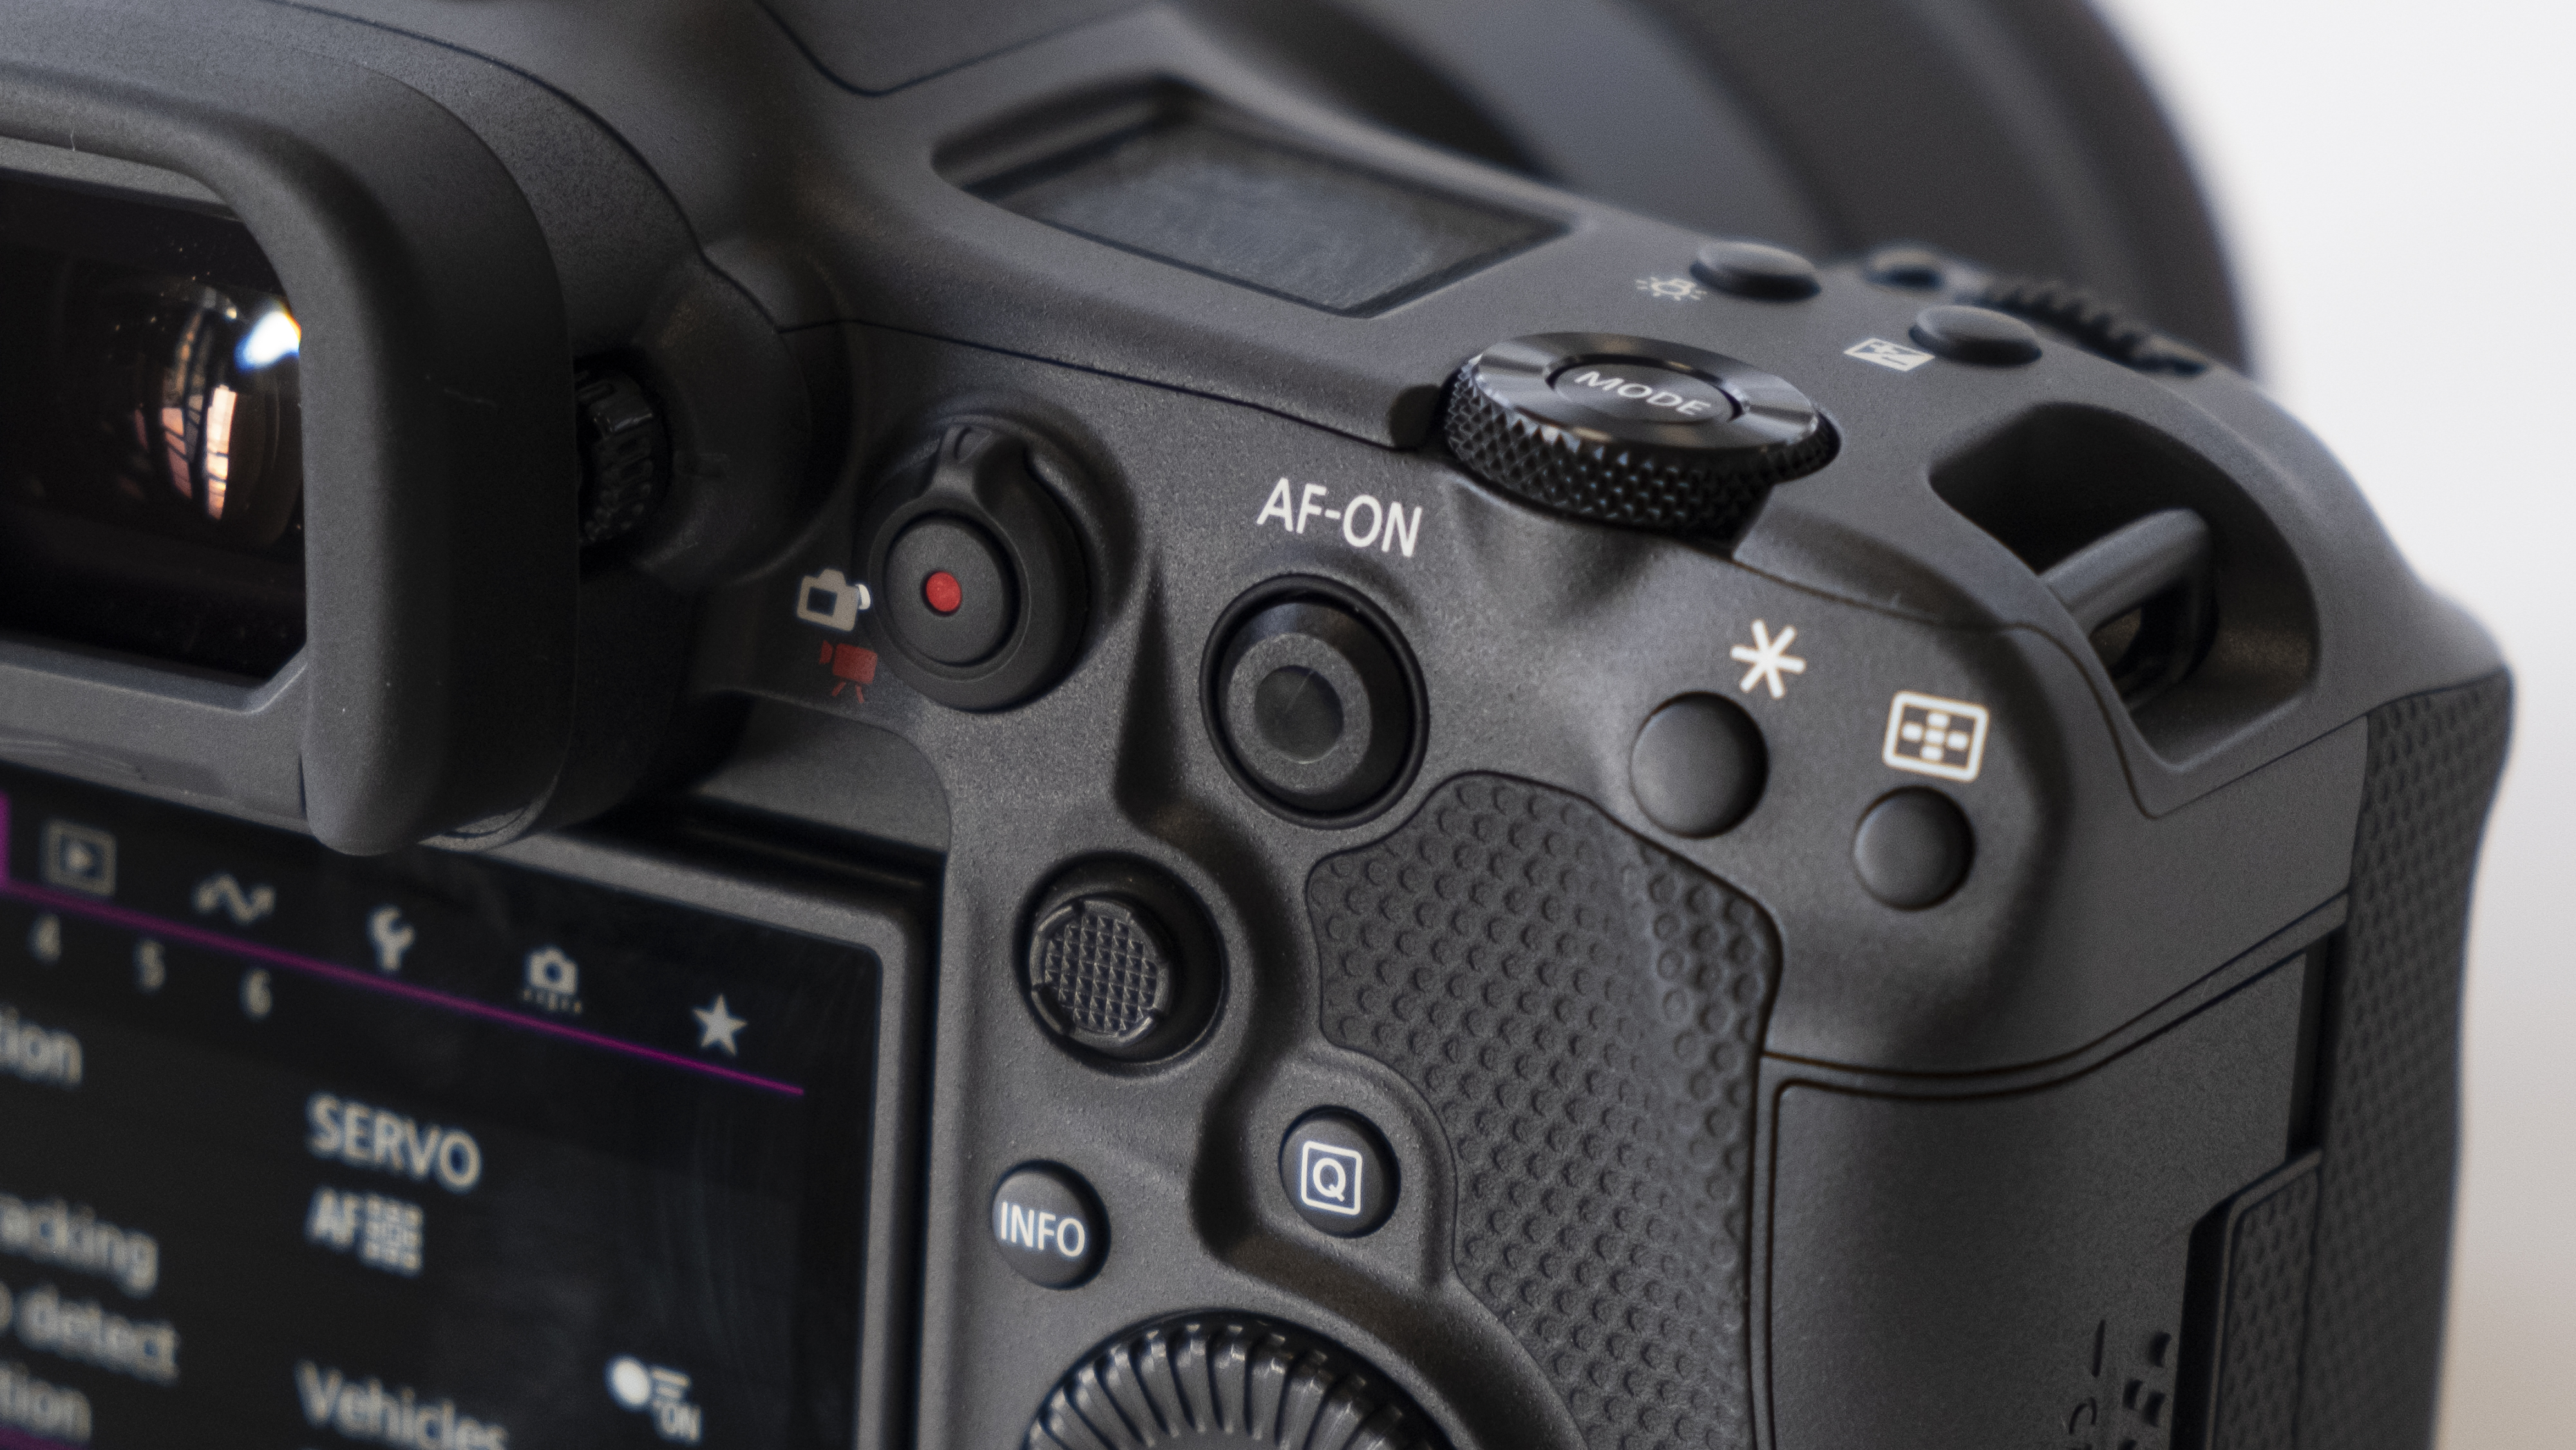 The rear buttons of the Canon EOS R3 mirrorless camera